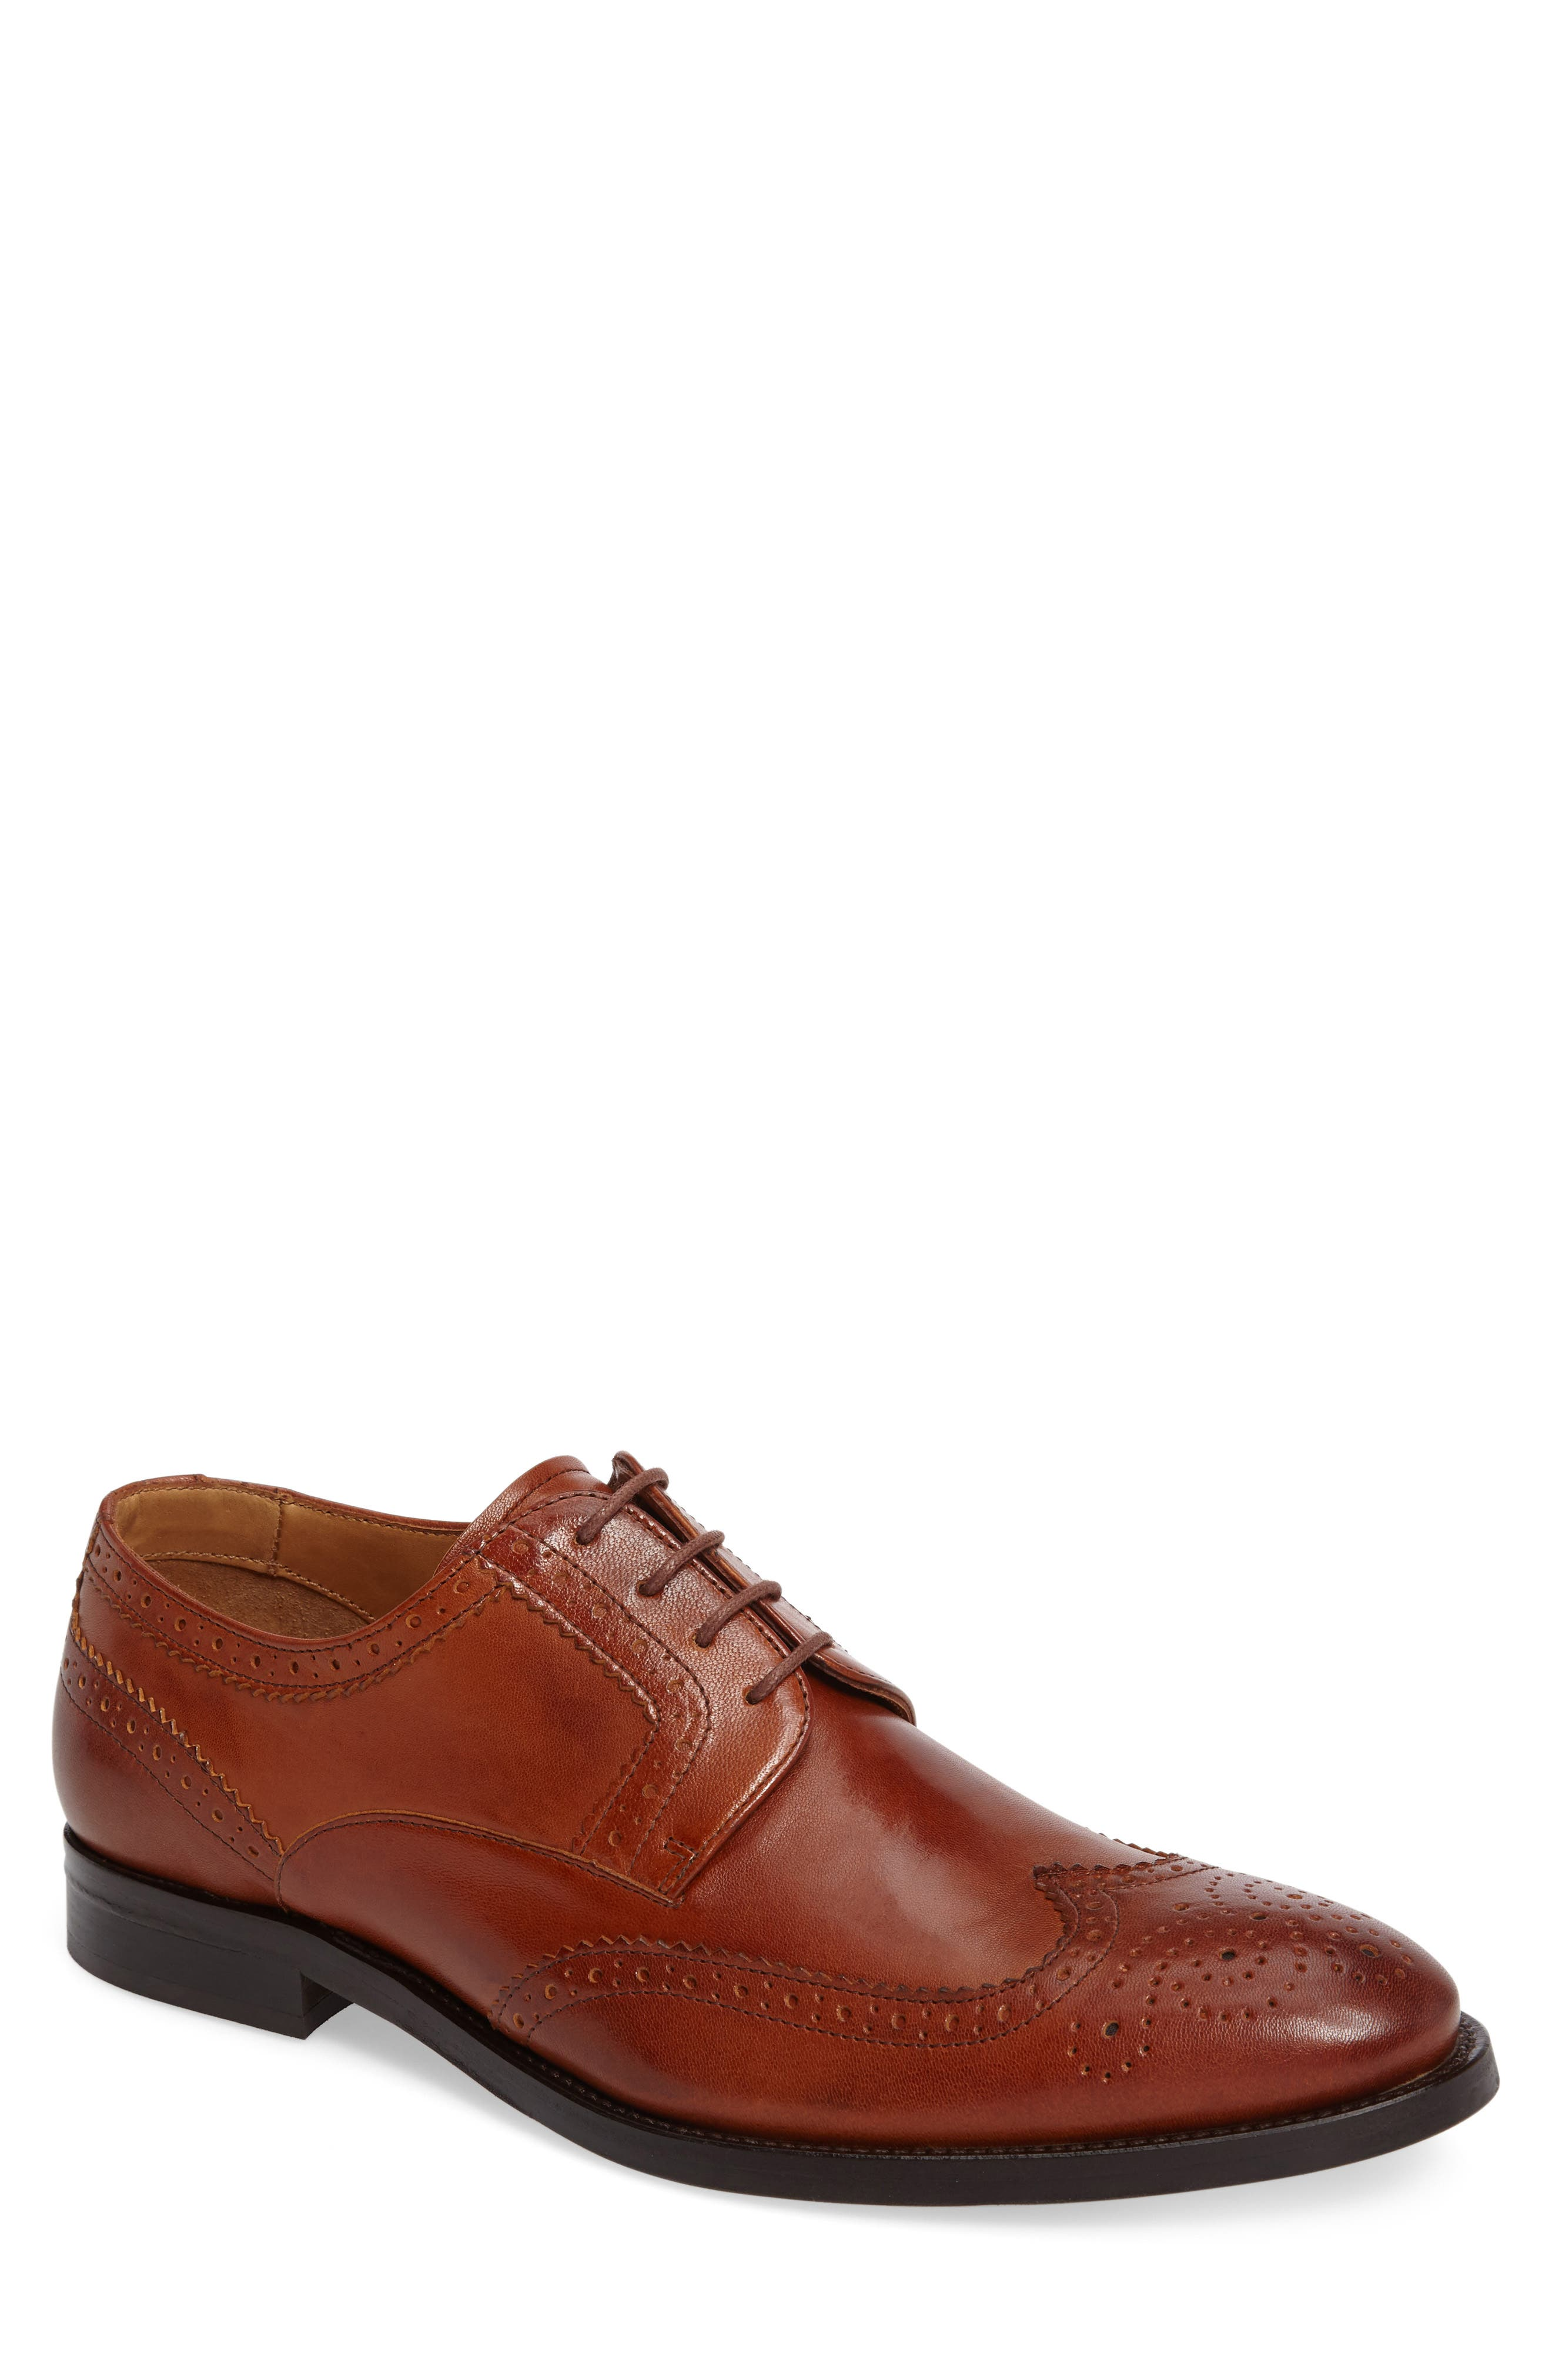 Vince Camuto Roben Wingtip Oxford (Men)